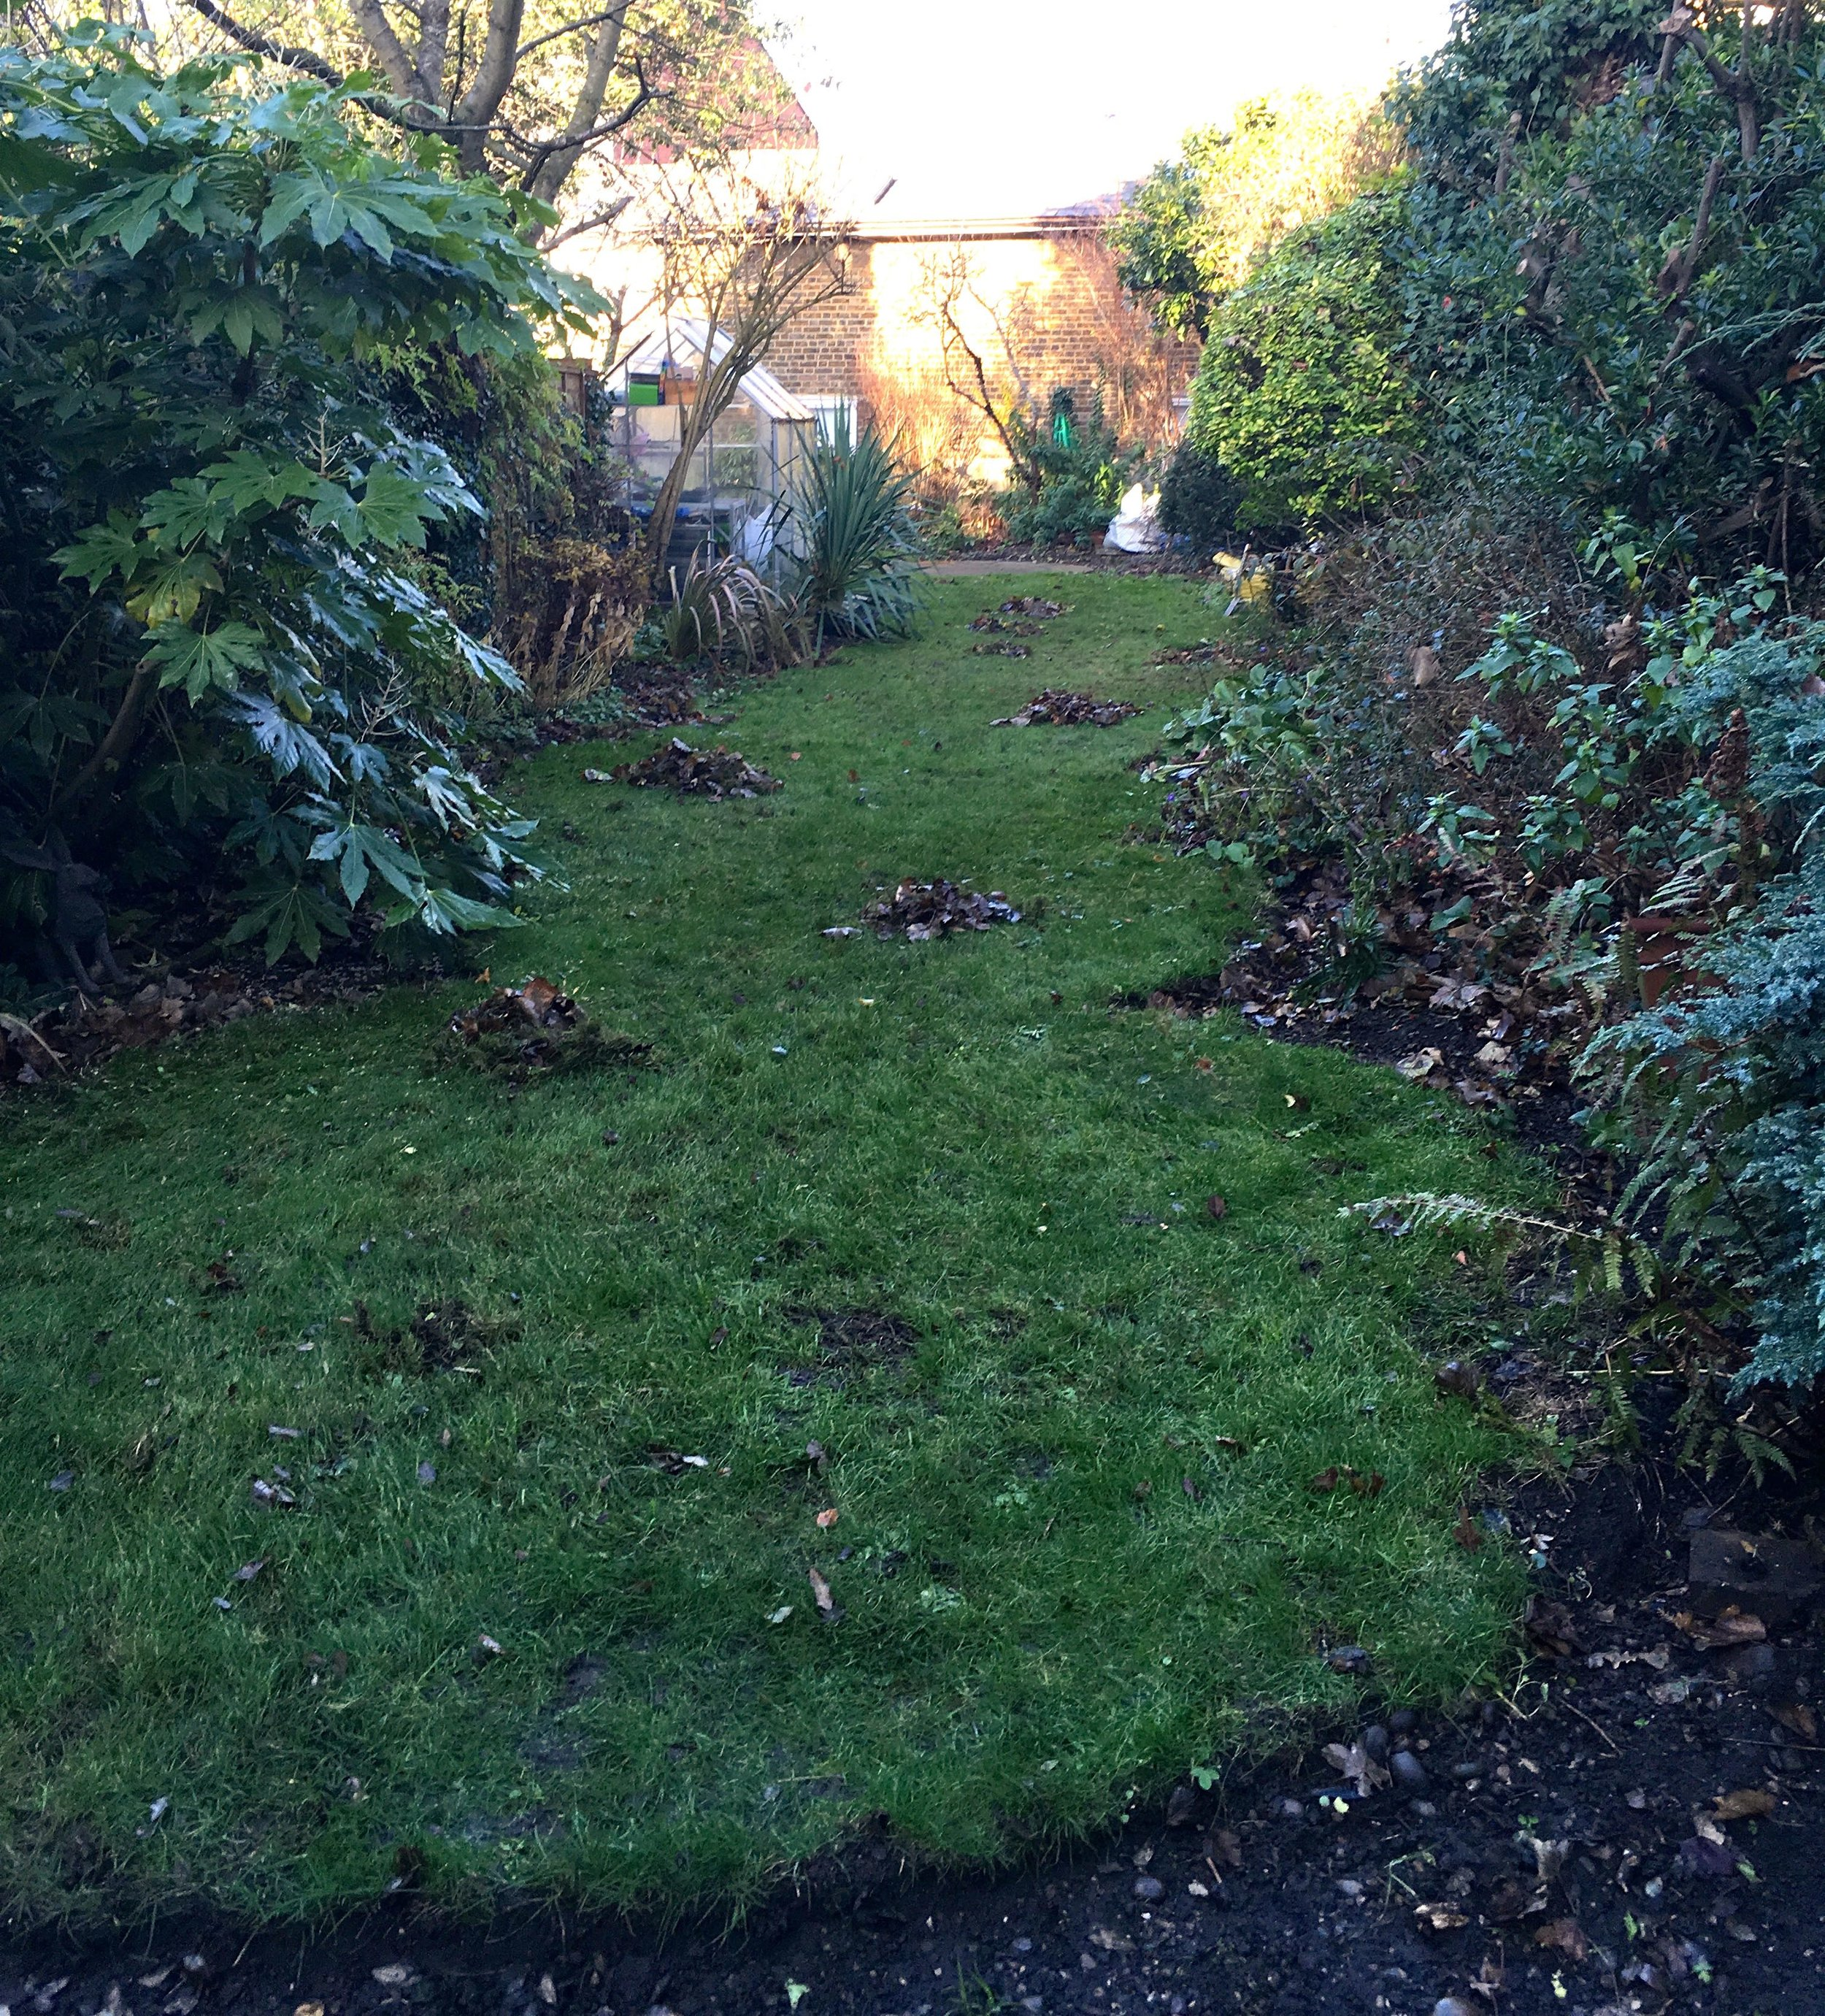 A view up the garden while the leaf collection was in progress. The bags of leaves are destined for my leaf compost heap at the allotment